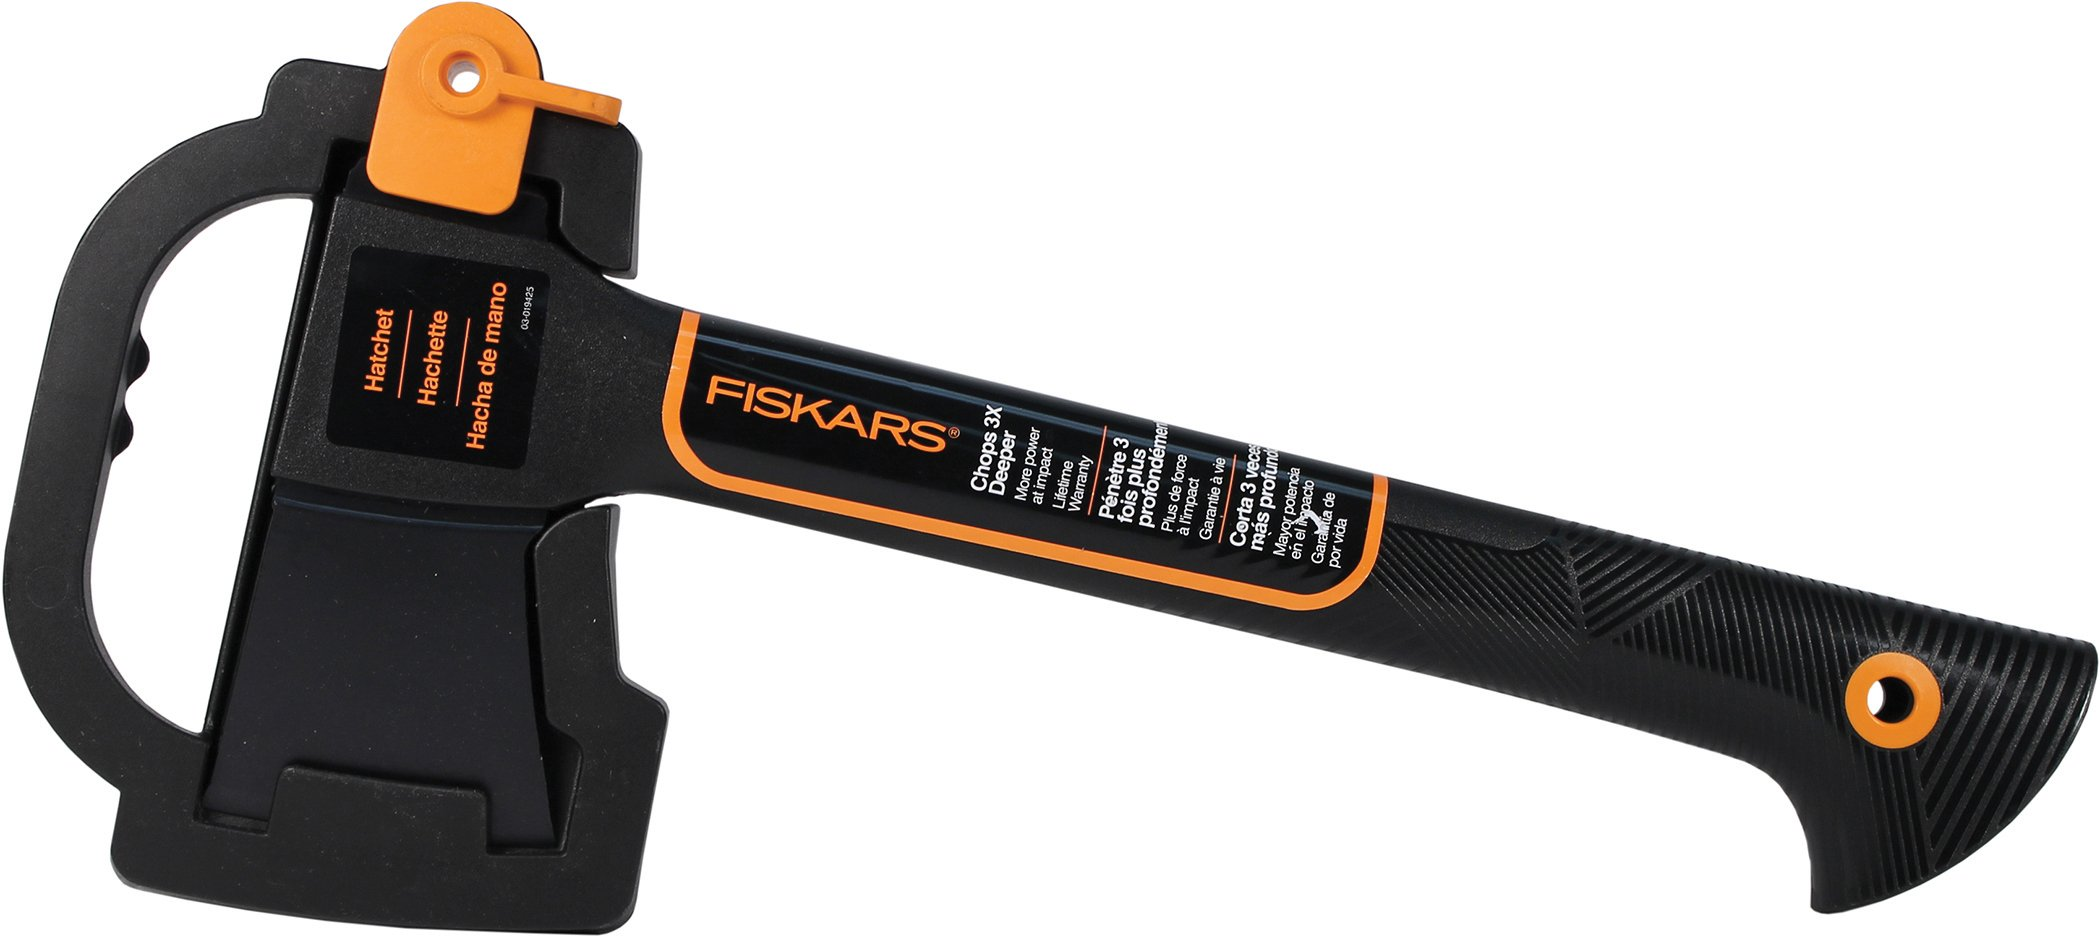 Fiskars 375501-1001 Hatchet with Sheath, 14''